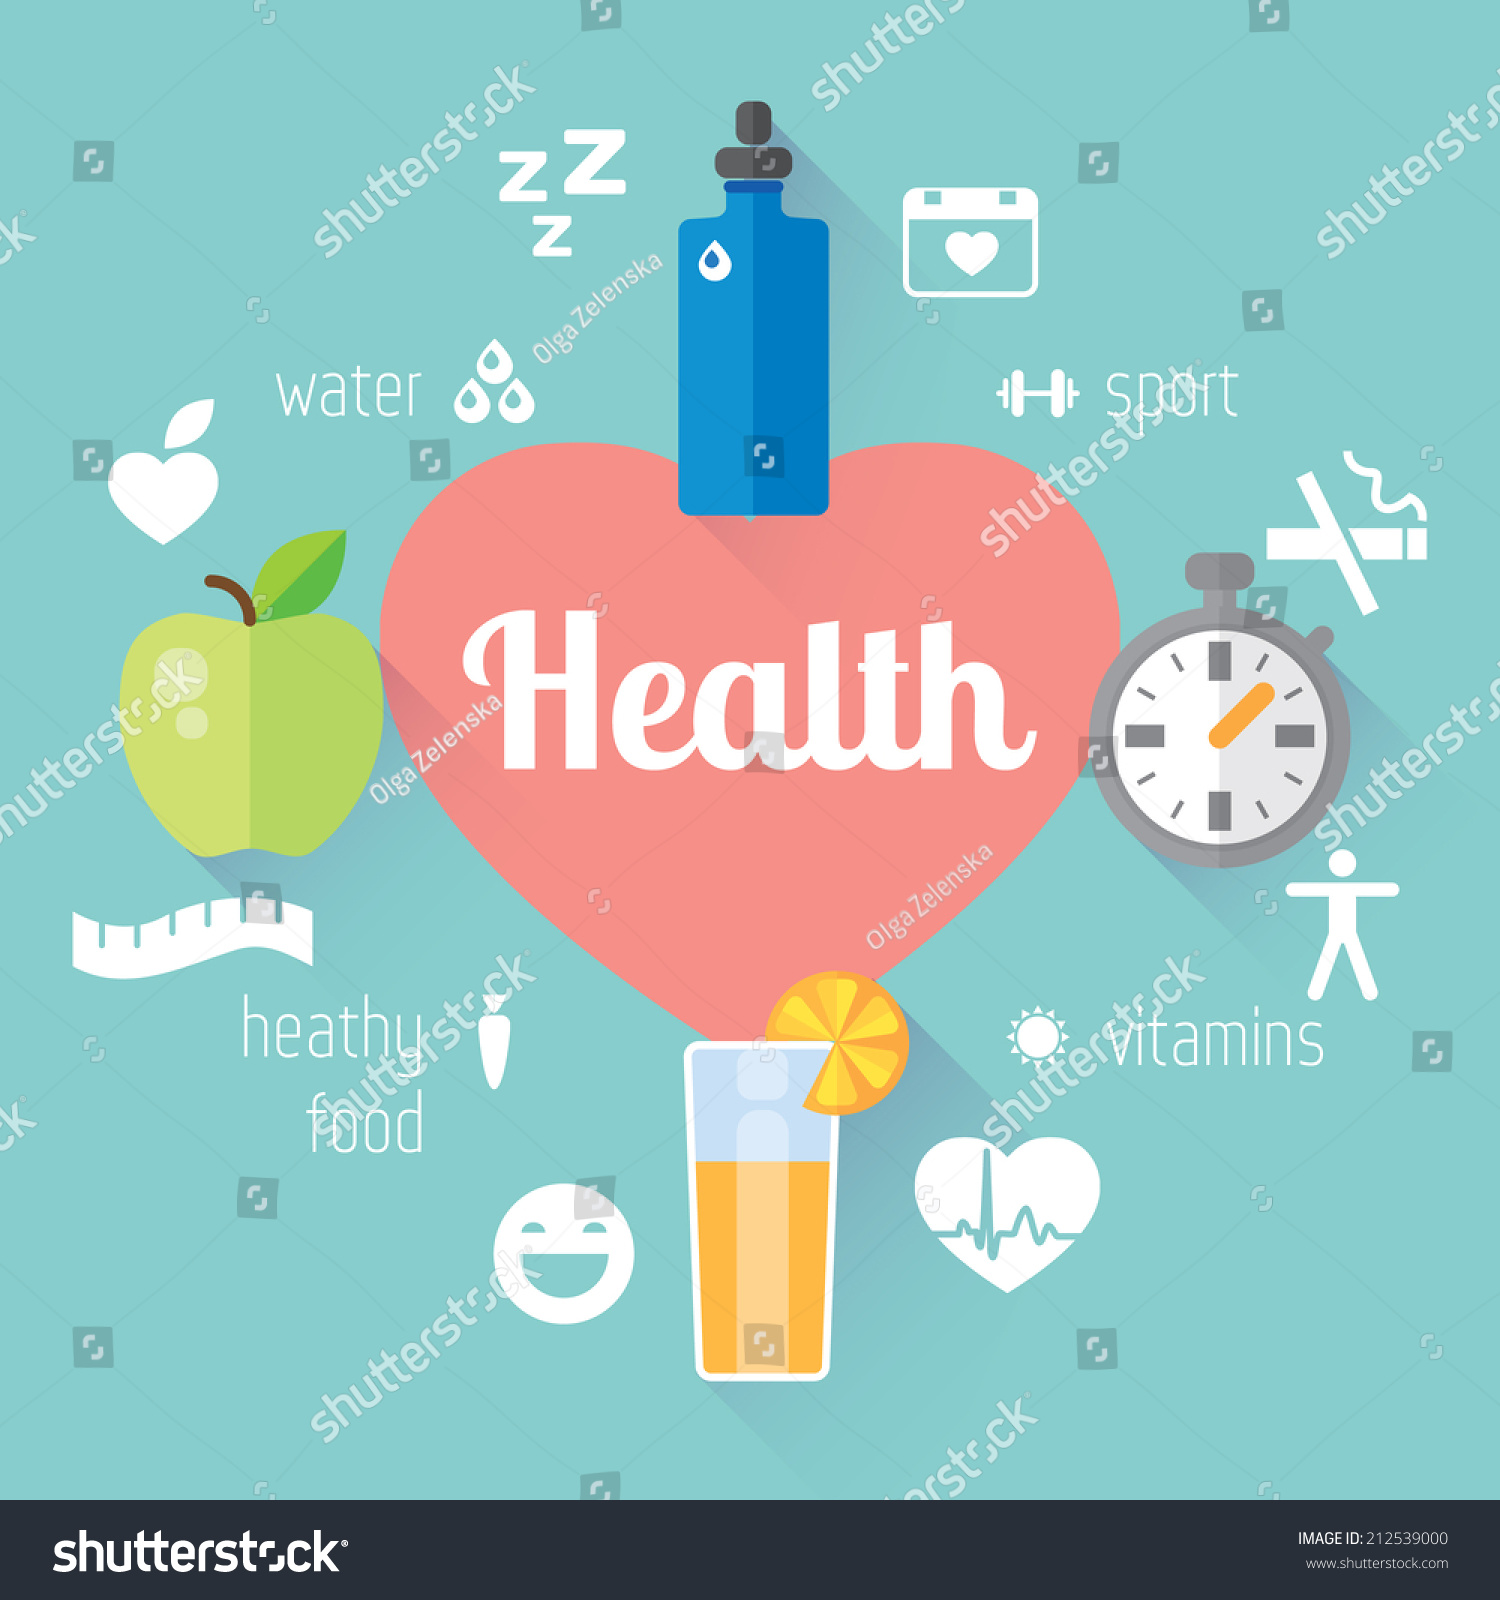 stock-vector-health-and-sport-lifestyle-illustration-and-info-graphic-vector-modern-flat-design-element-212539000.jpg